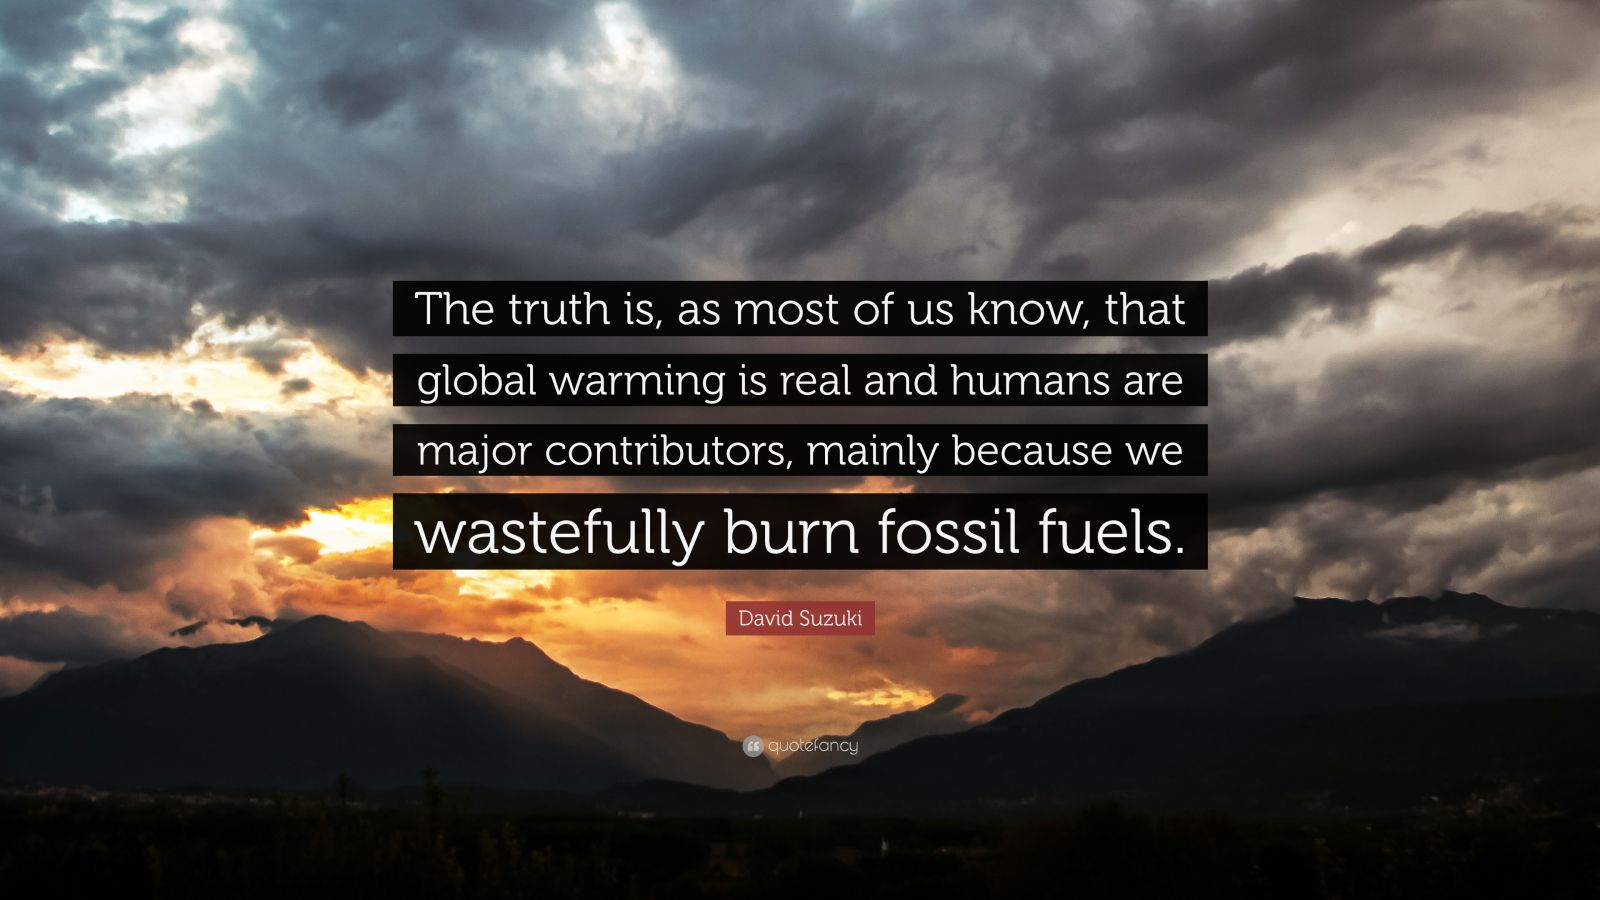 """David Suzuki Quote: """"The truth is, as most of us know, that global warming is real and humans are major contributors, mainly because we wastefully burn fossil fuels."""""""